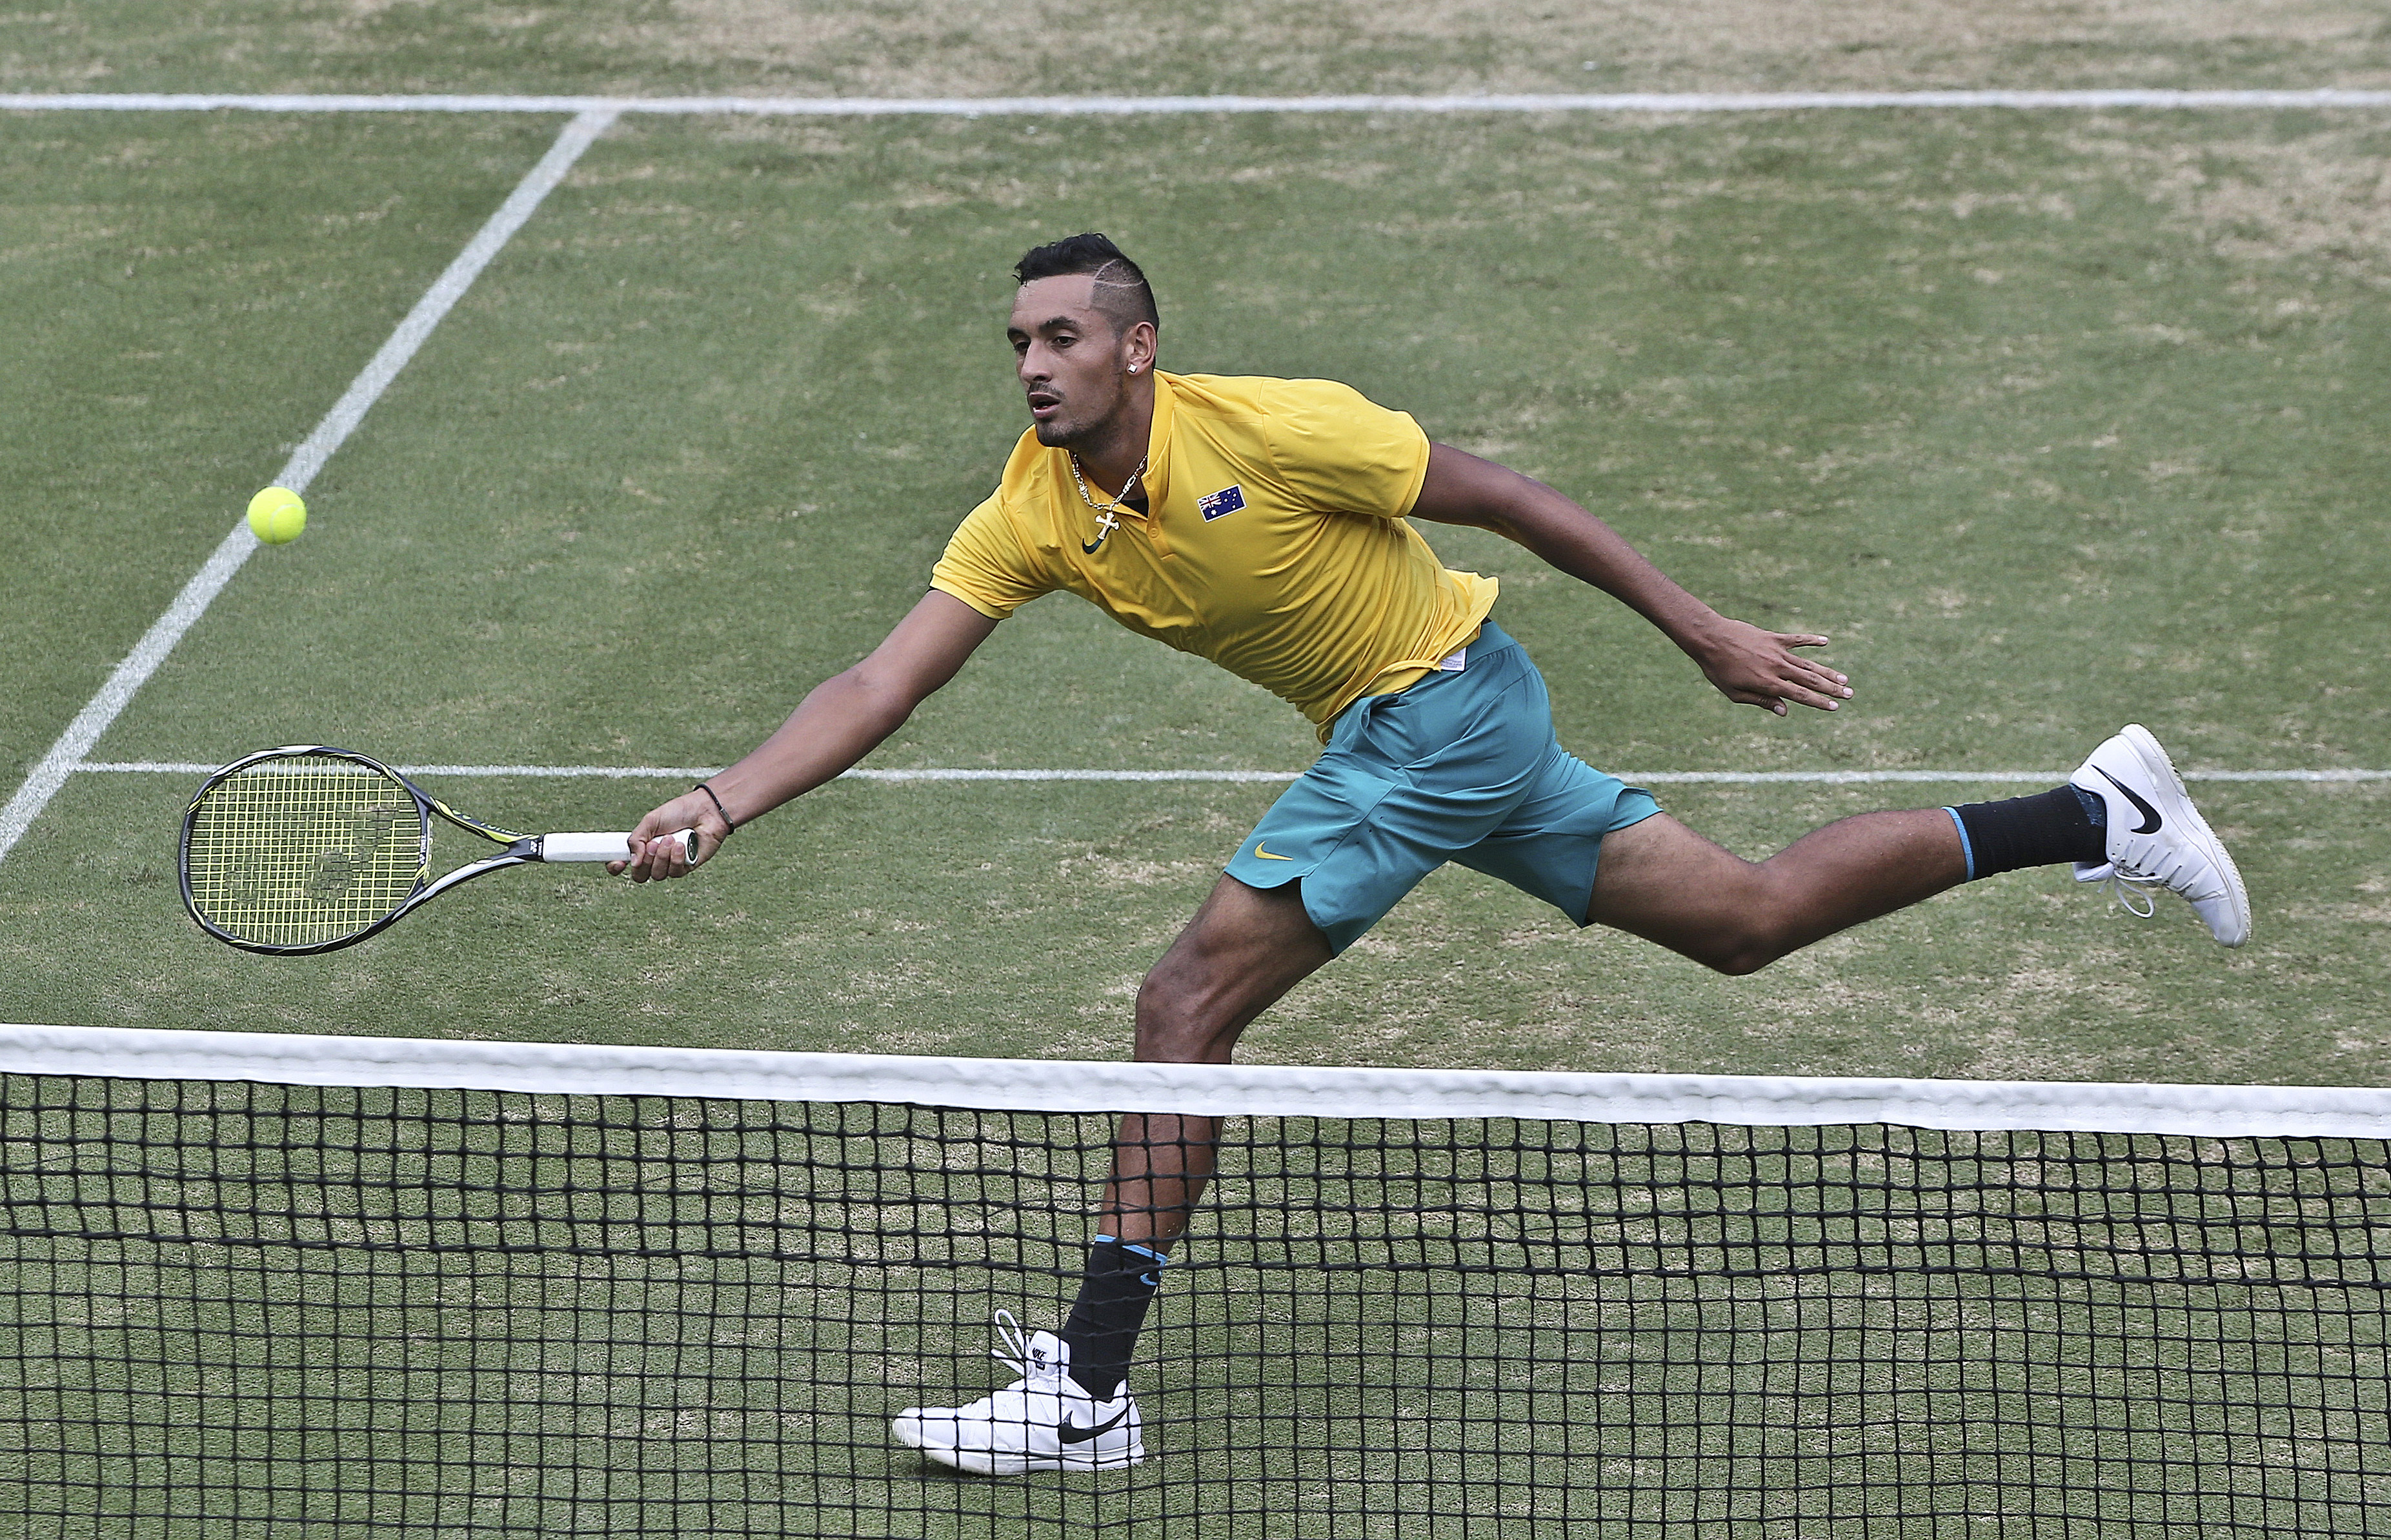 Australia's Nick Kyrgios plays a forehand shot at the net in his Davis Cup tennis tie against Slovakia's Andrej Martin in Sydney Friday, Sept. 16, 2016. Kyrgios won the match 3-0. (AP Photo/Rob Griffith)